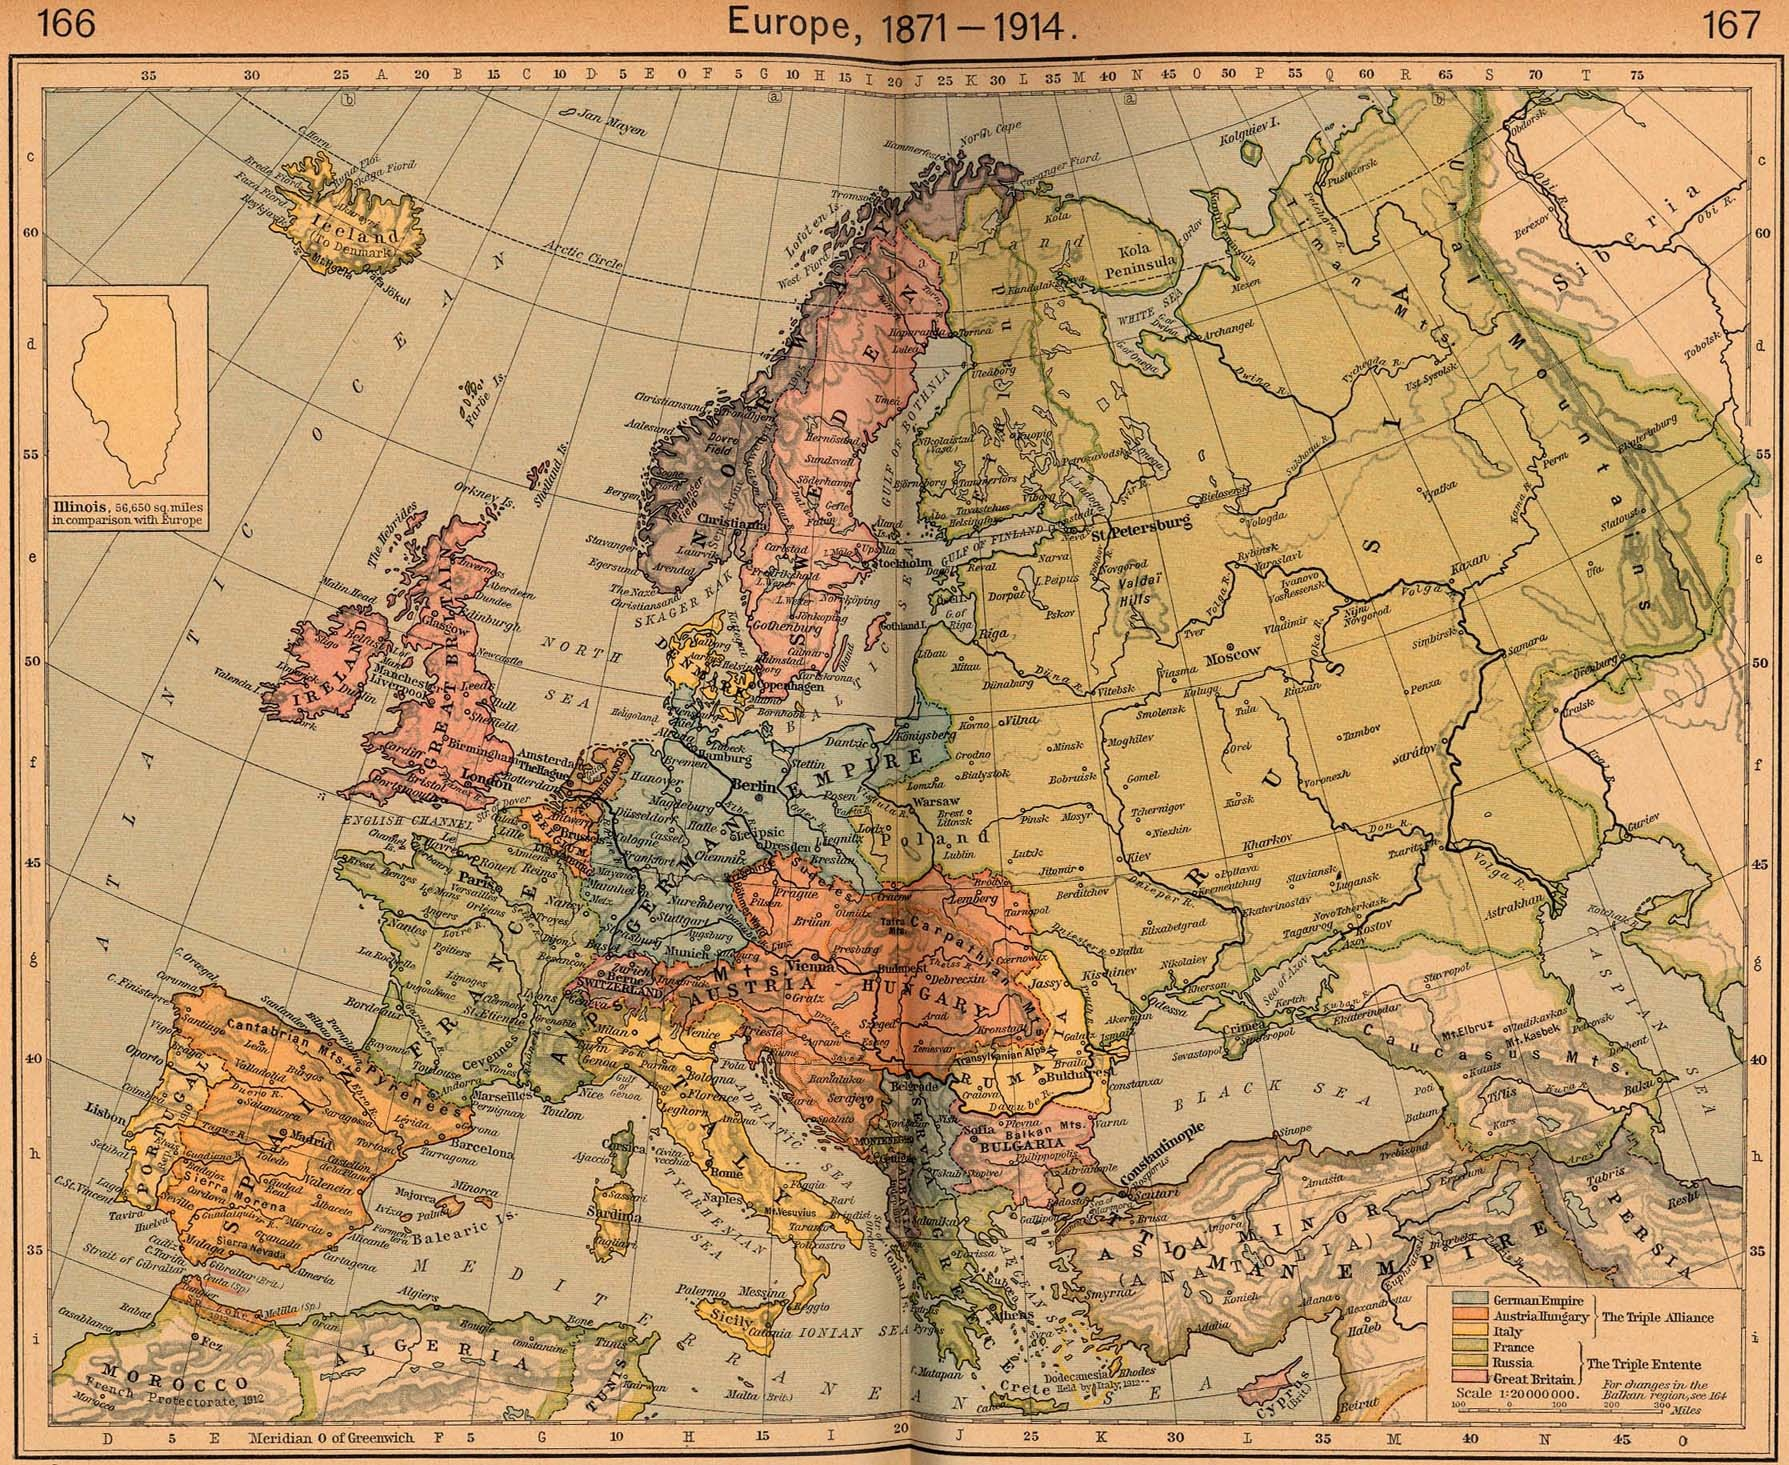 1920s Europe Map.History 464 Europe Since 1914 Unlv